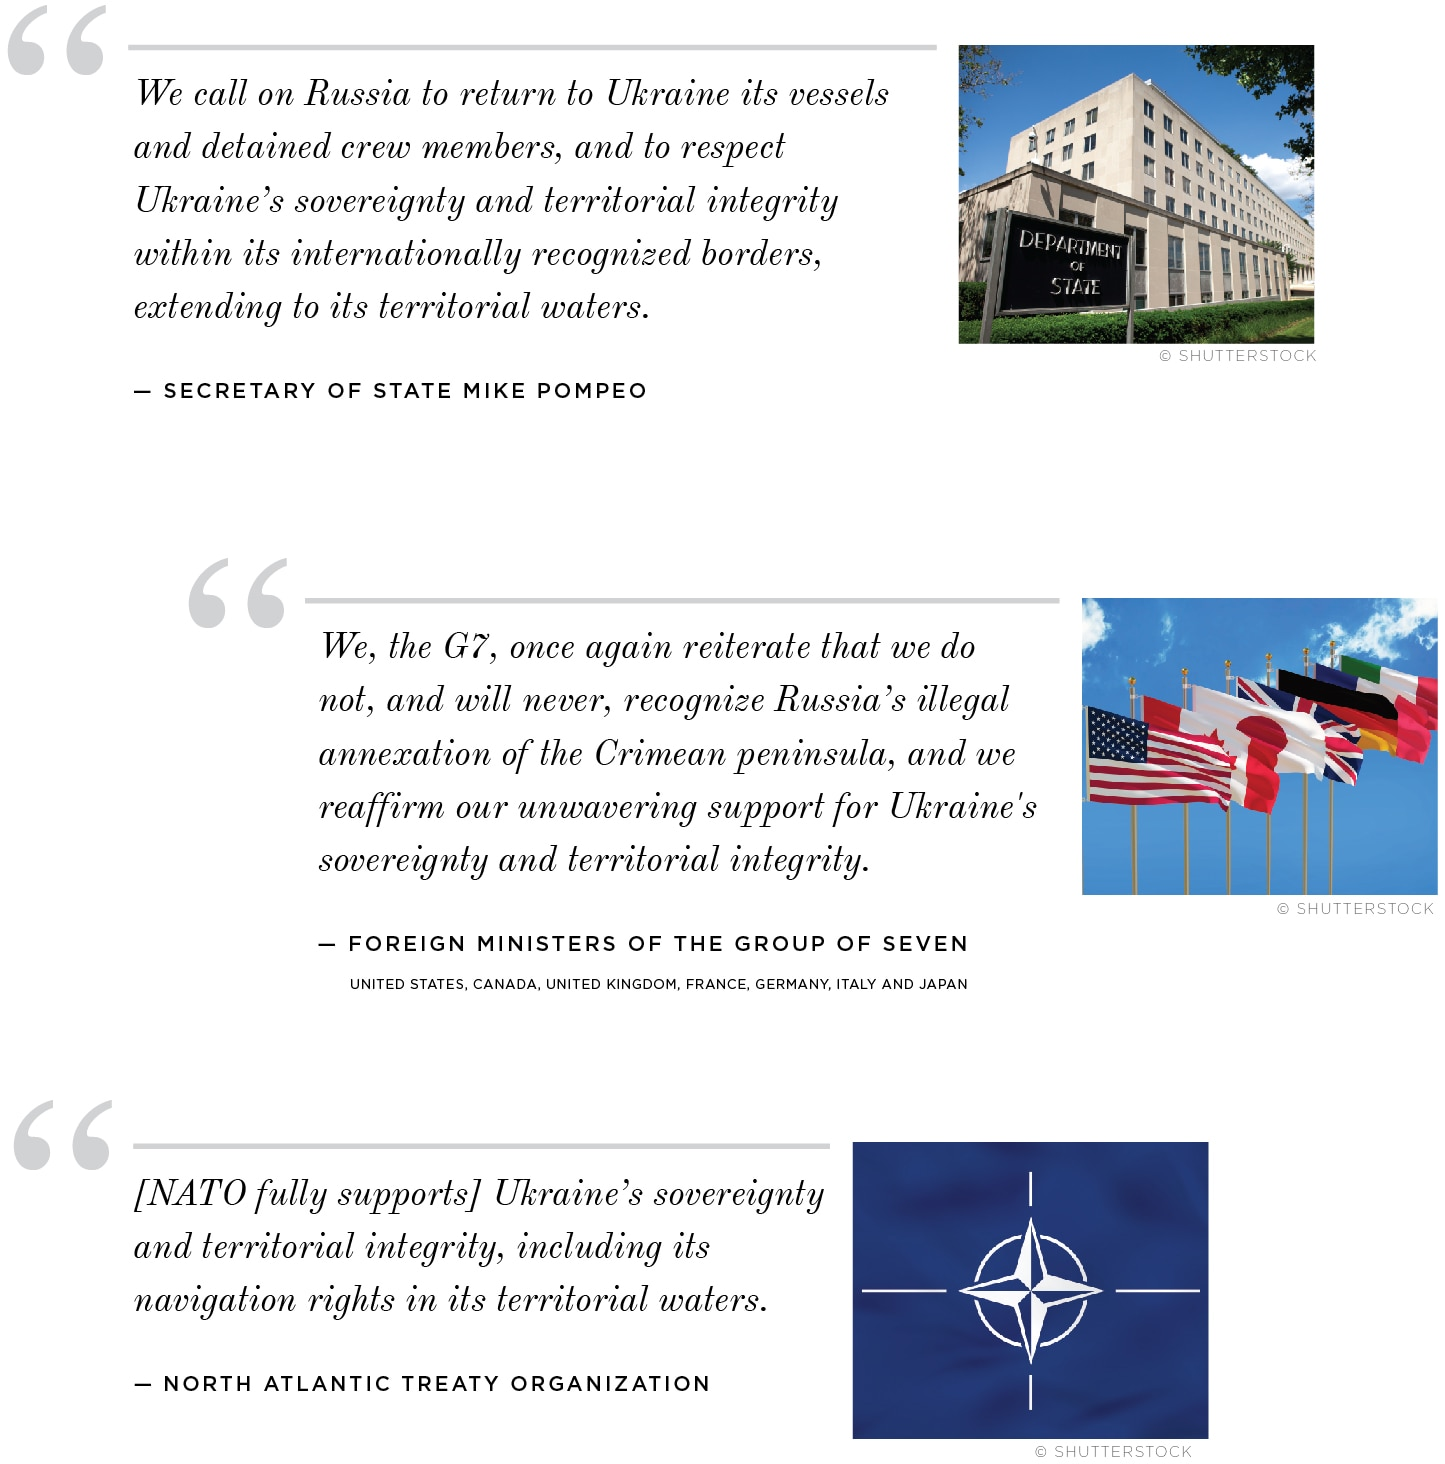 Graphic with quotes on Russian seizure of Ukrainian ships (State Dept./J. Maruszewski)